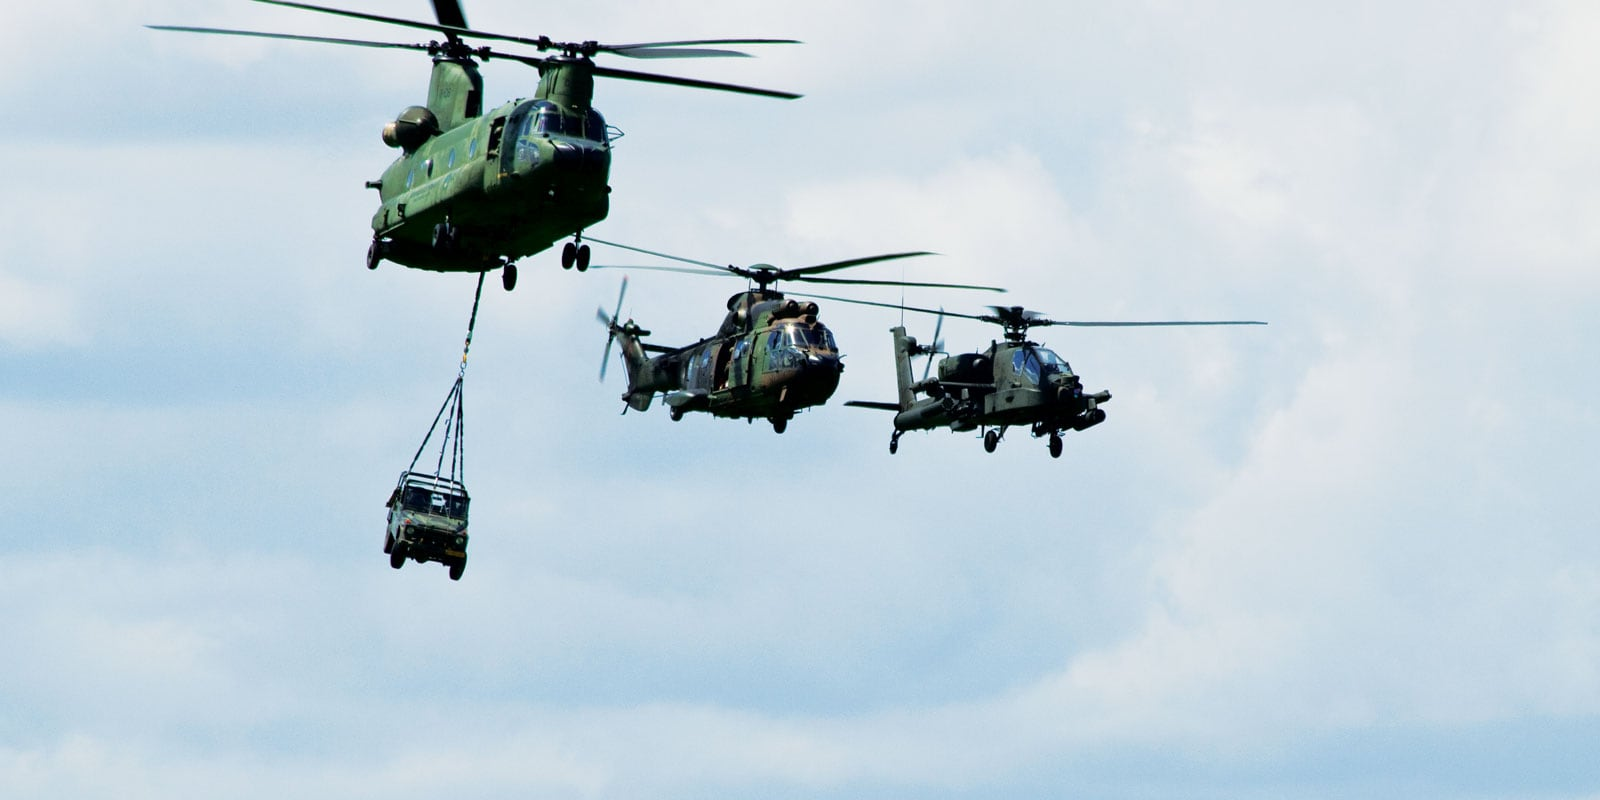 Army helicopter lifting lines